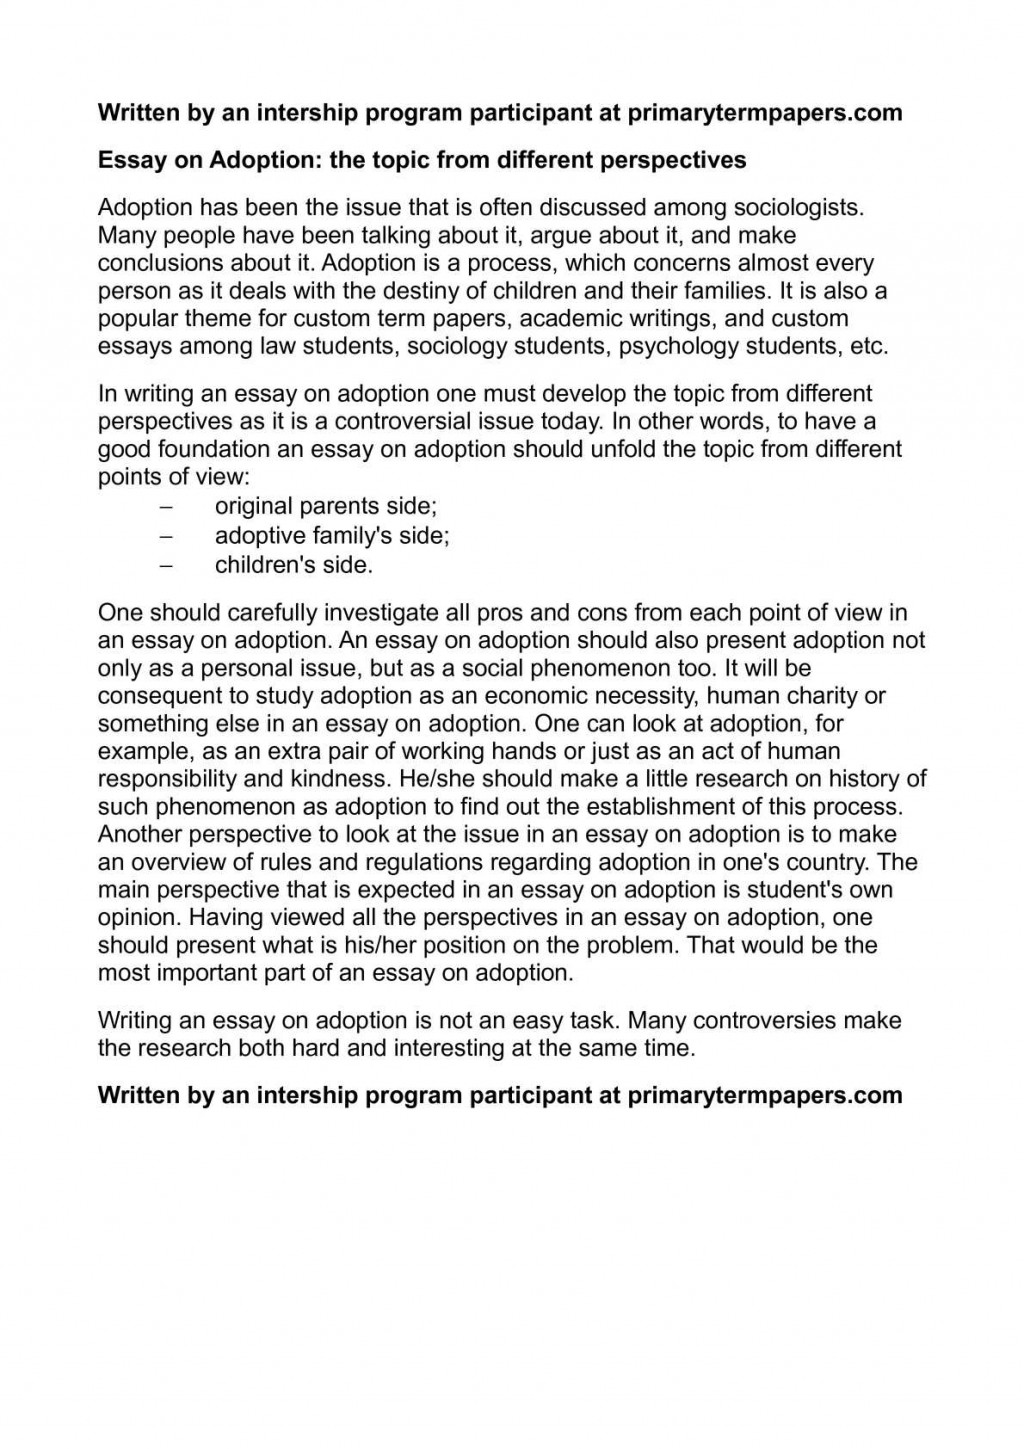 006 Adoption Essay Example Unforgettable Titles Outline Large